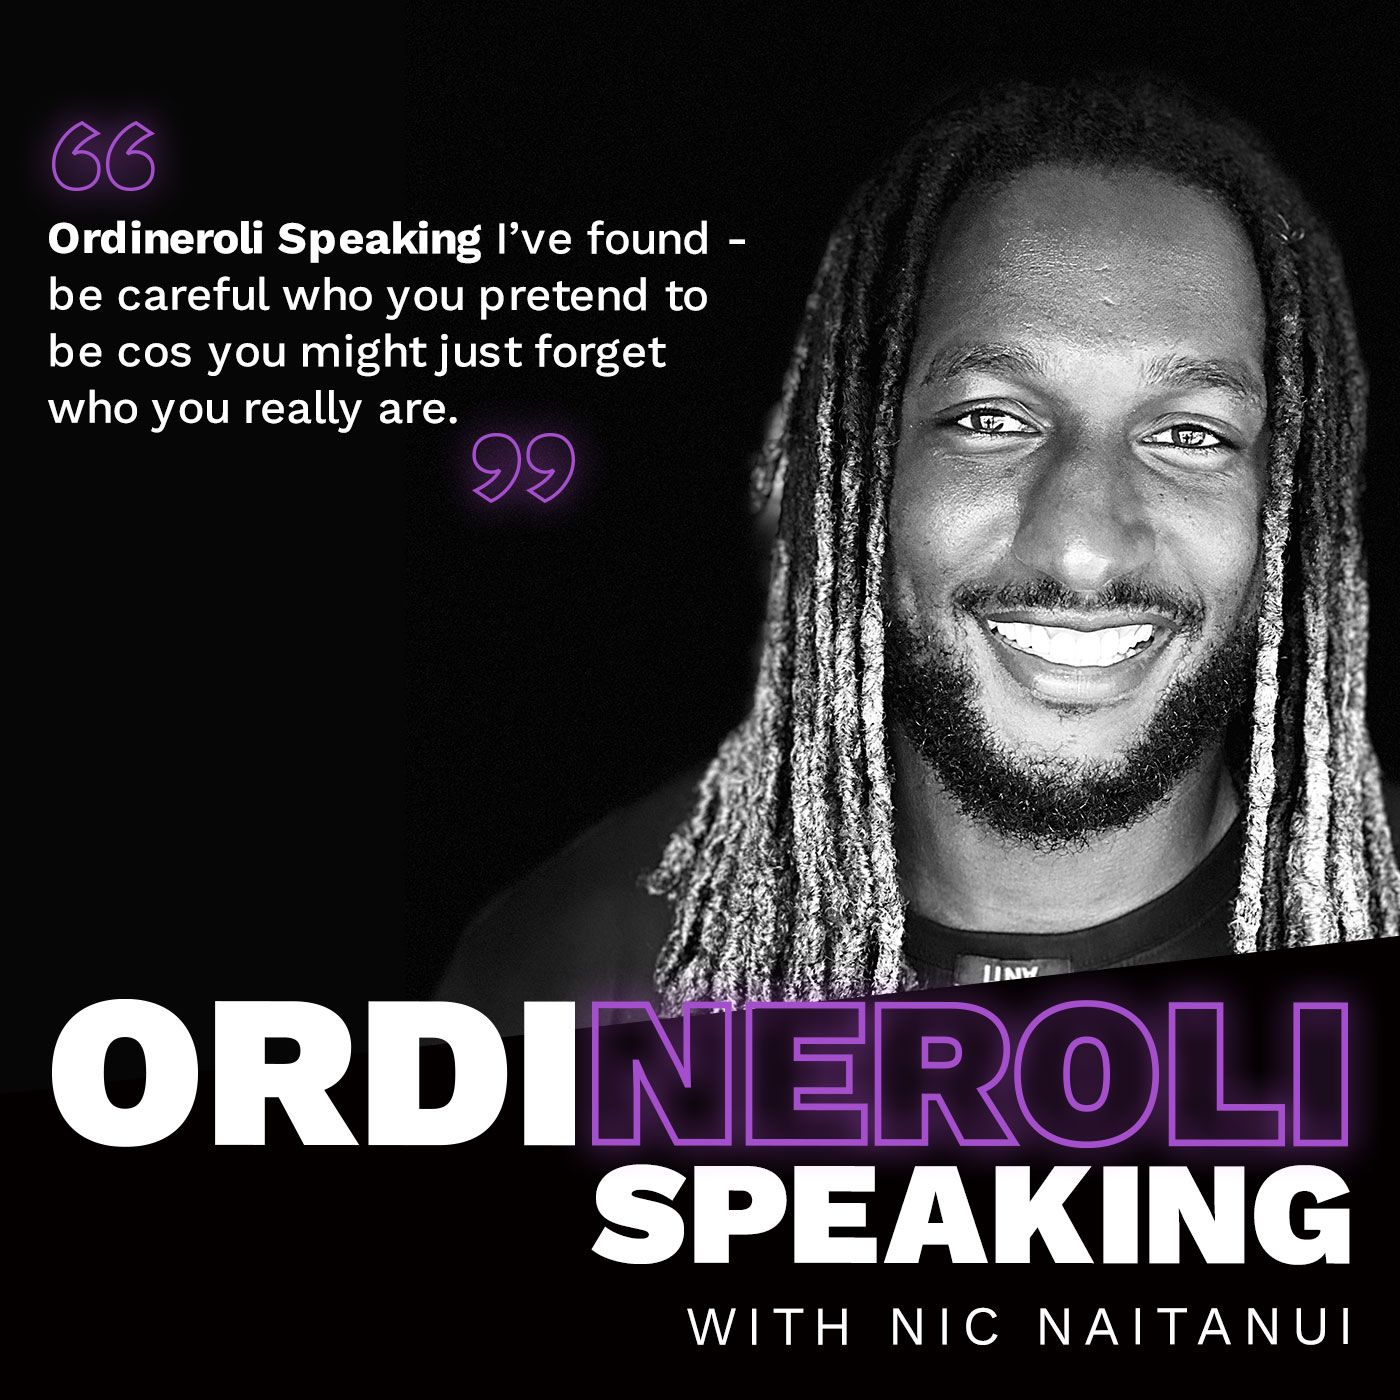 Nic Naitanui - Ordineroli Speaking